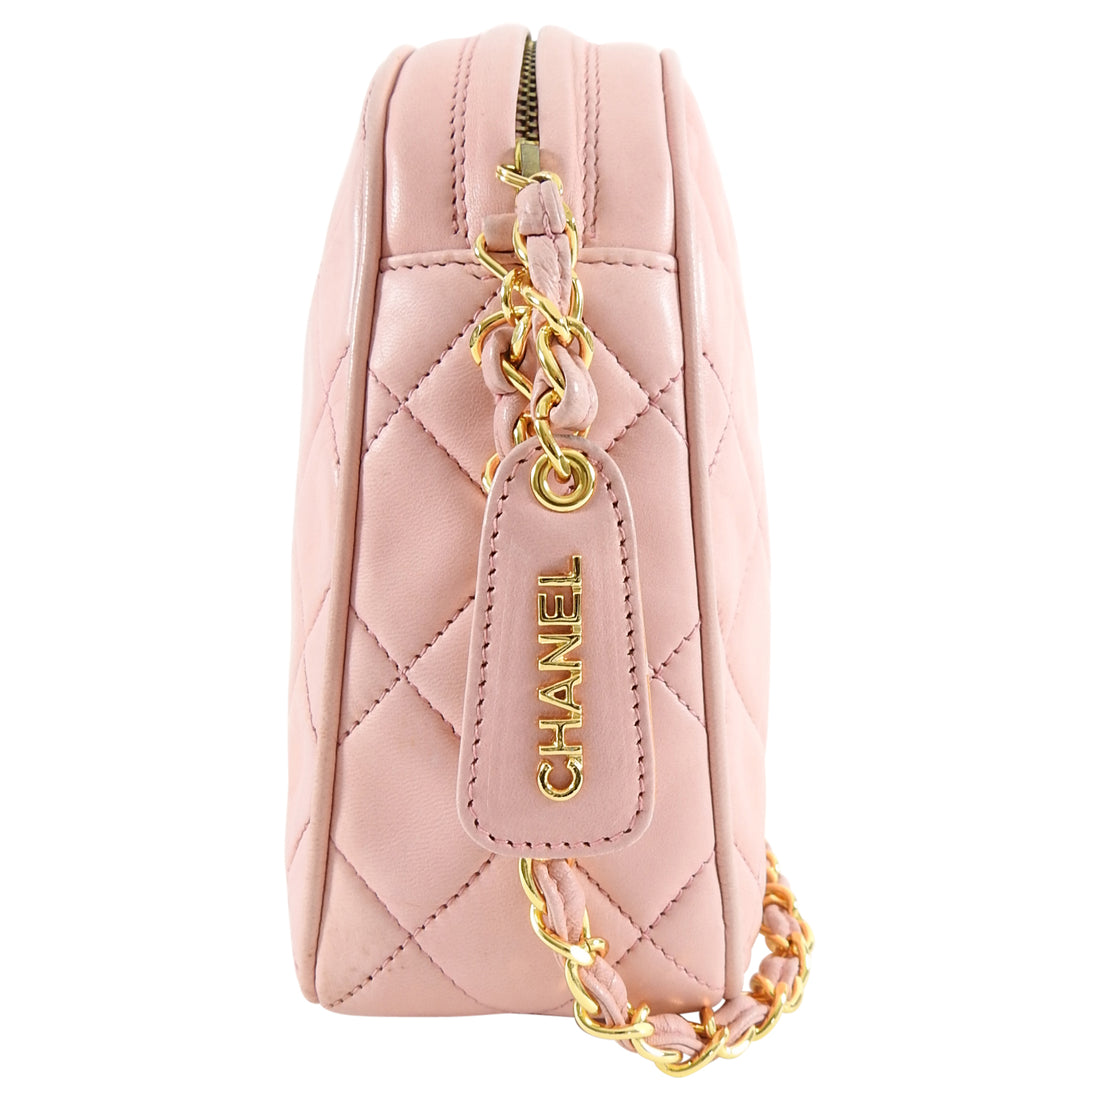 Chanel Vintage 1994 Light Pink Lambskin CC Camera Bag